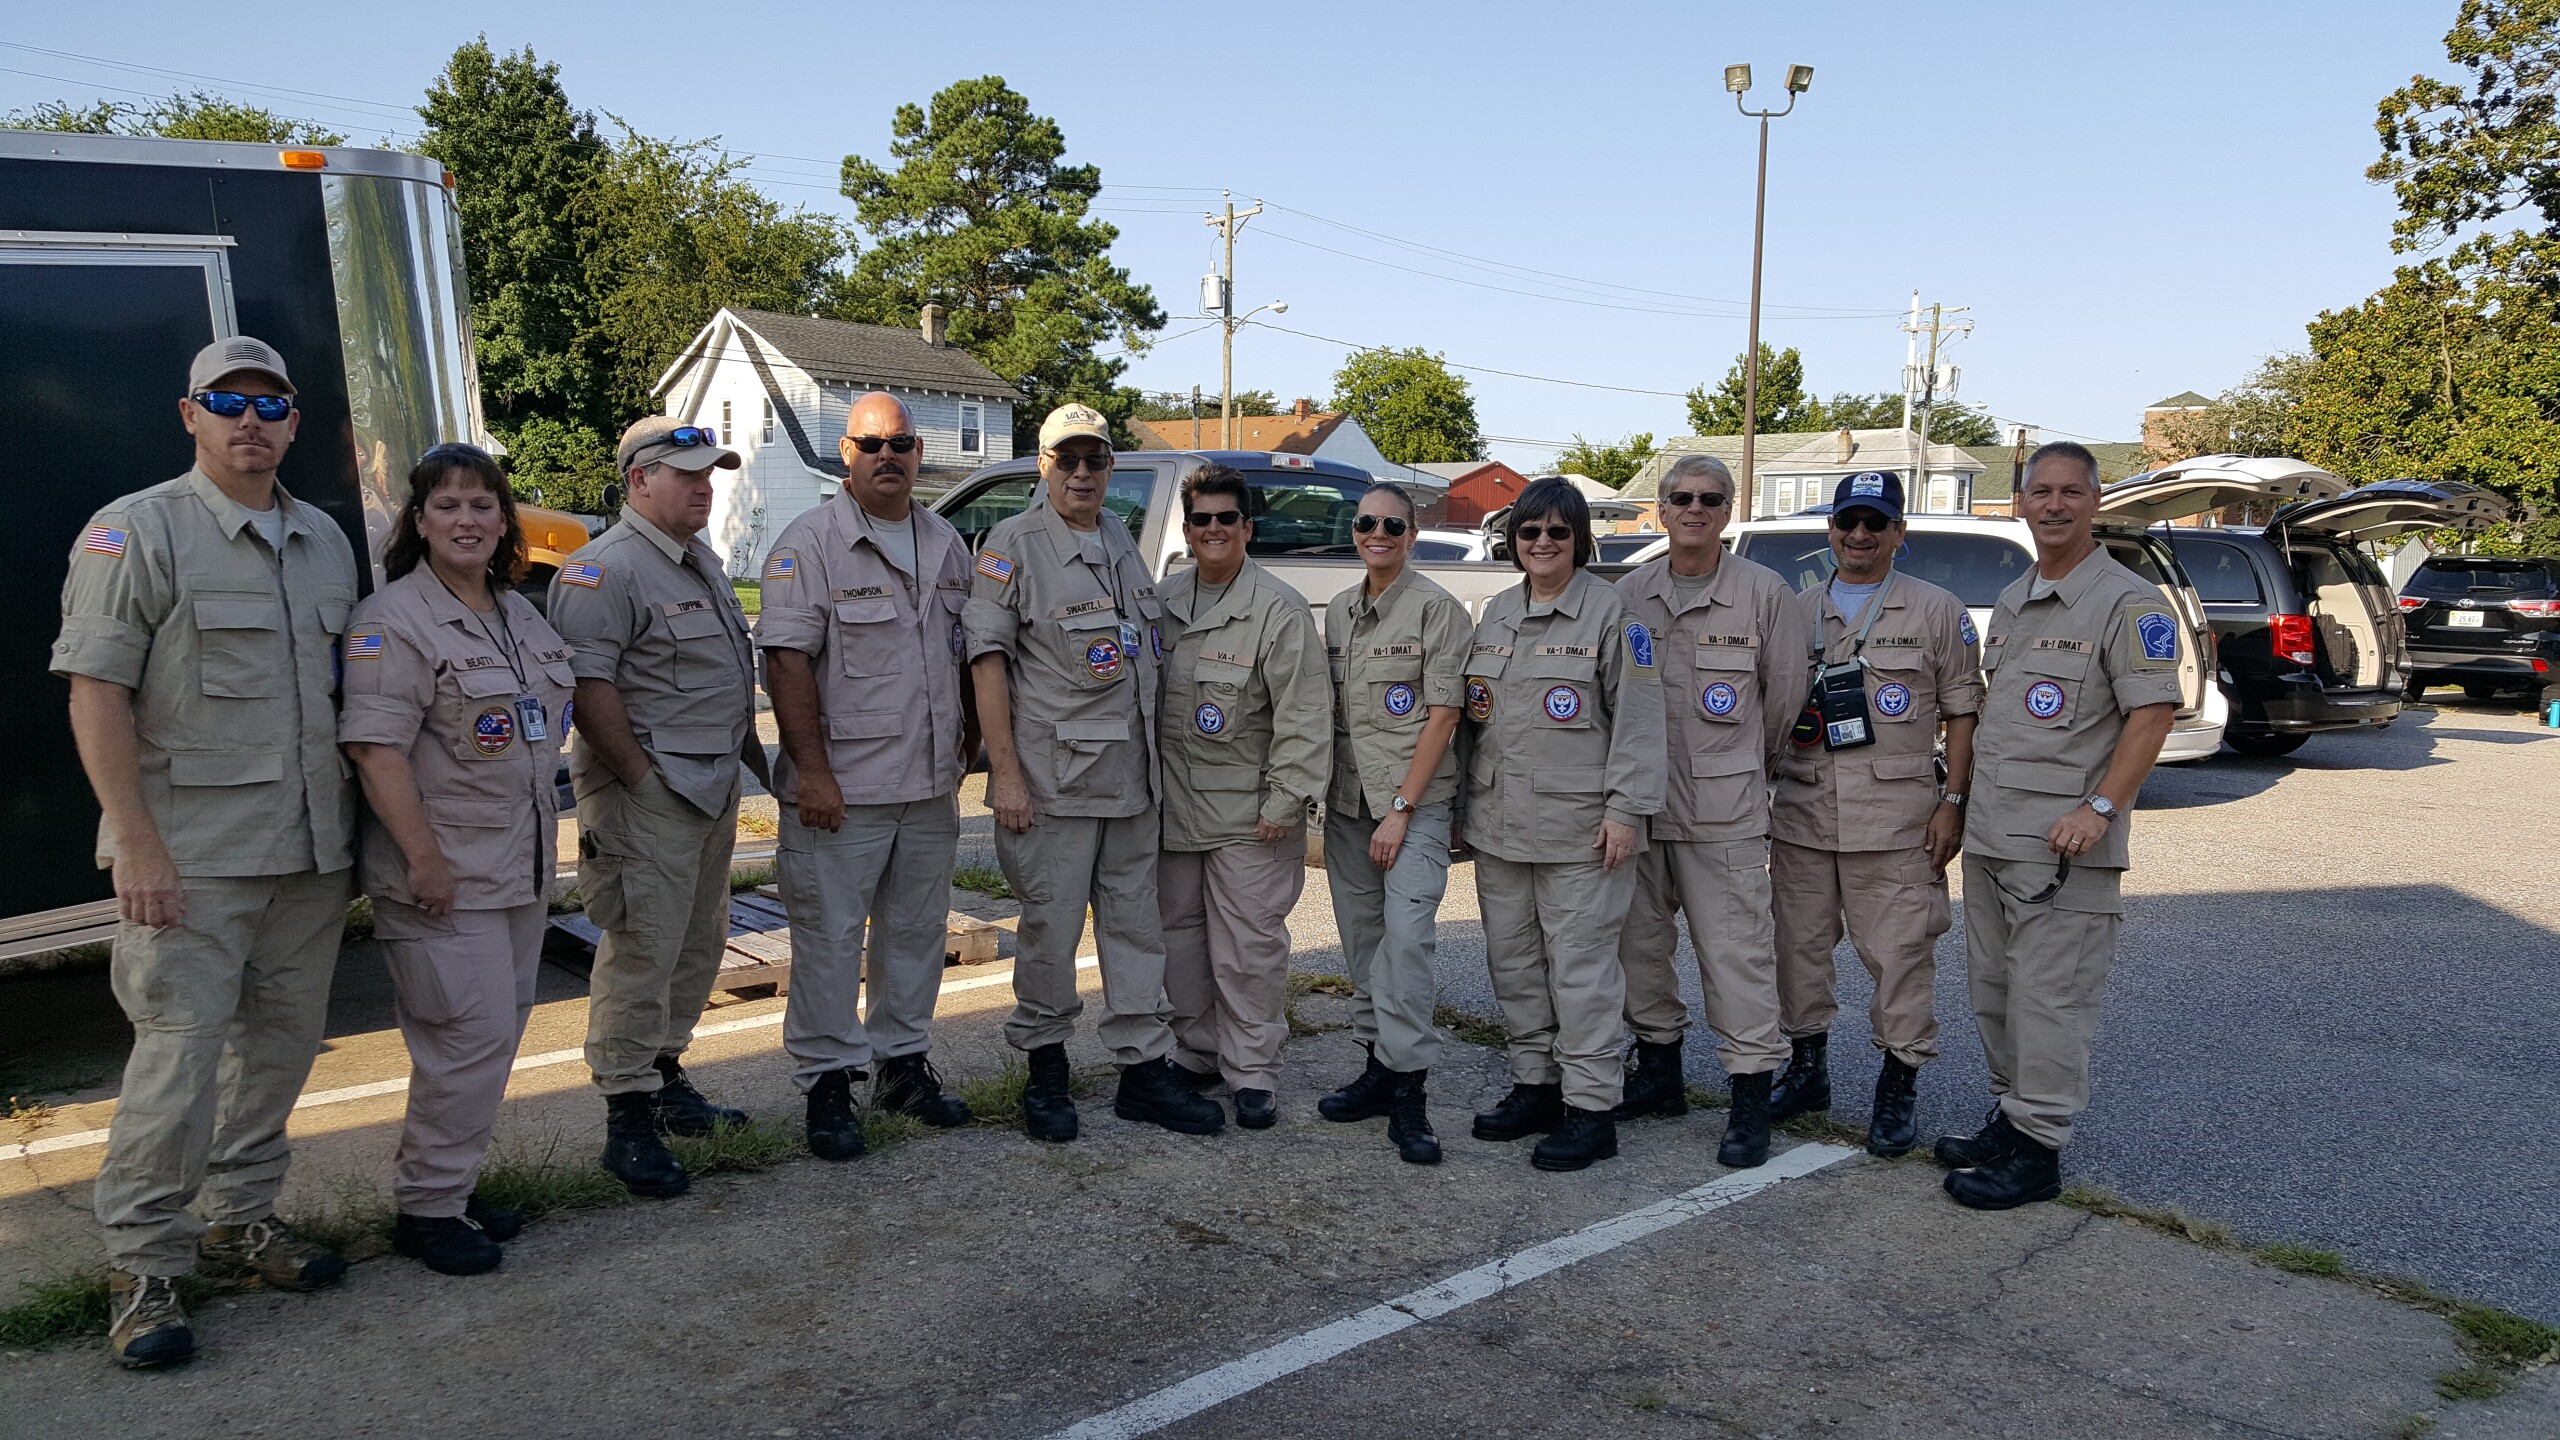 Photos: Virginia Disaster Medical Assistance Team responds to Hurricane Irma reliefefforts